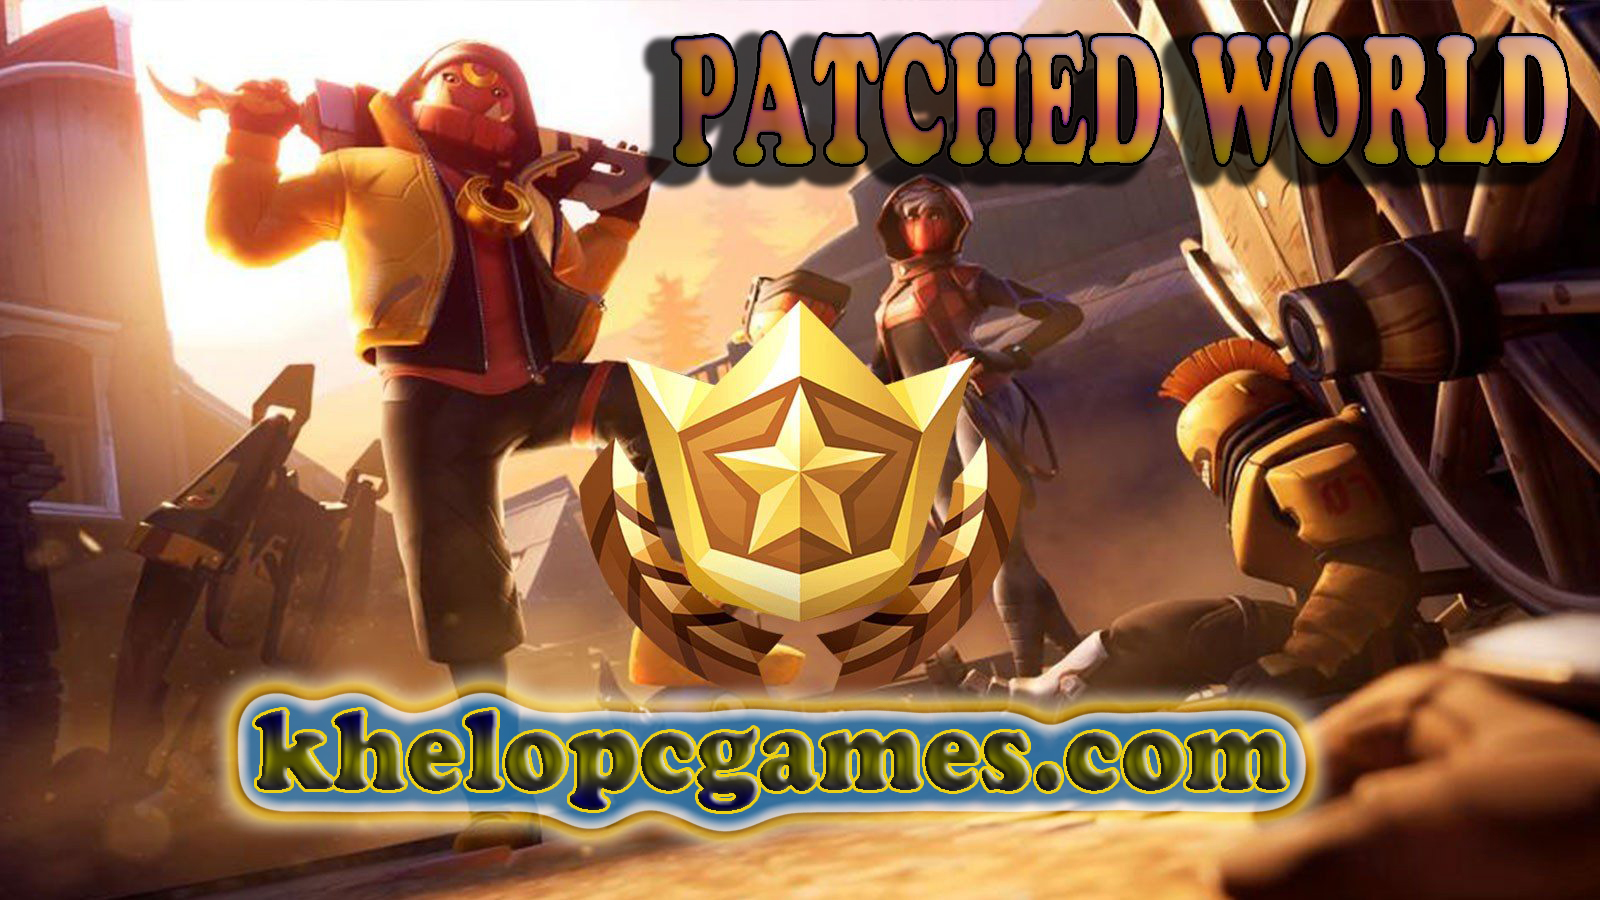 Patched world PC Game + Torrent Free Download Full Version